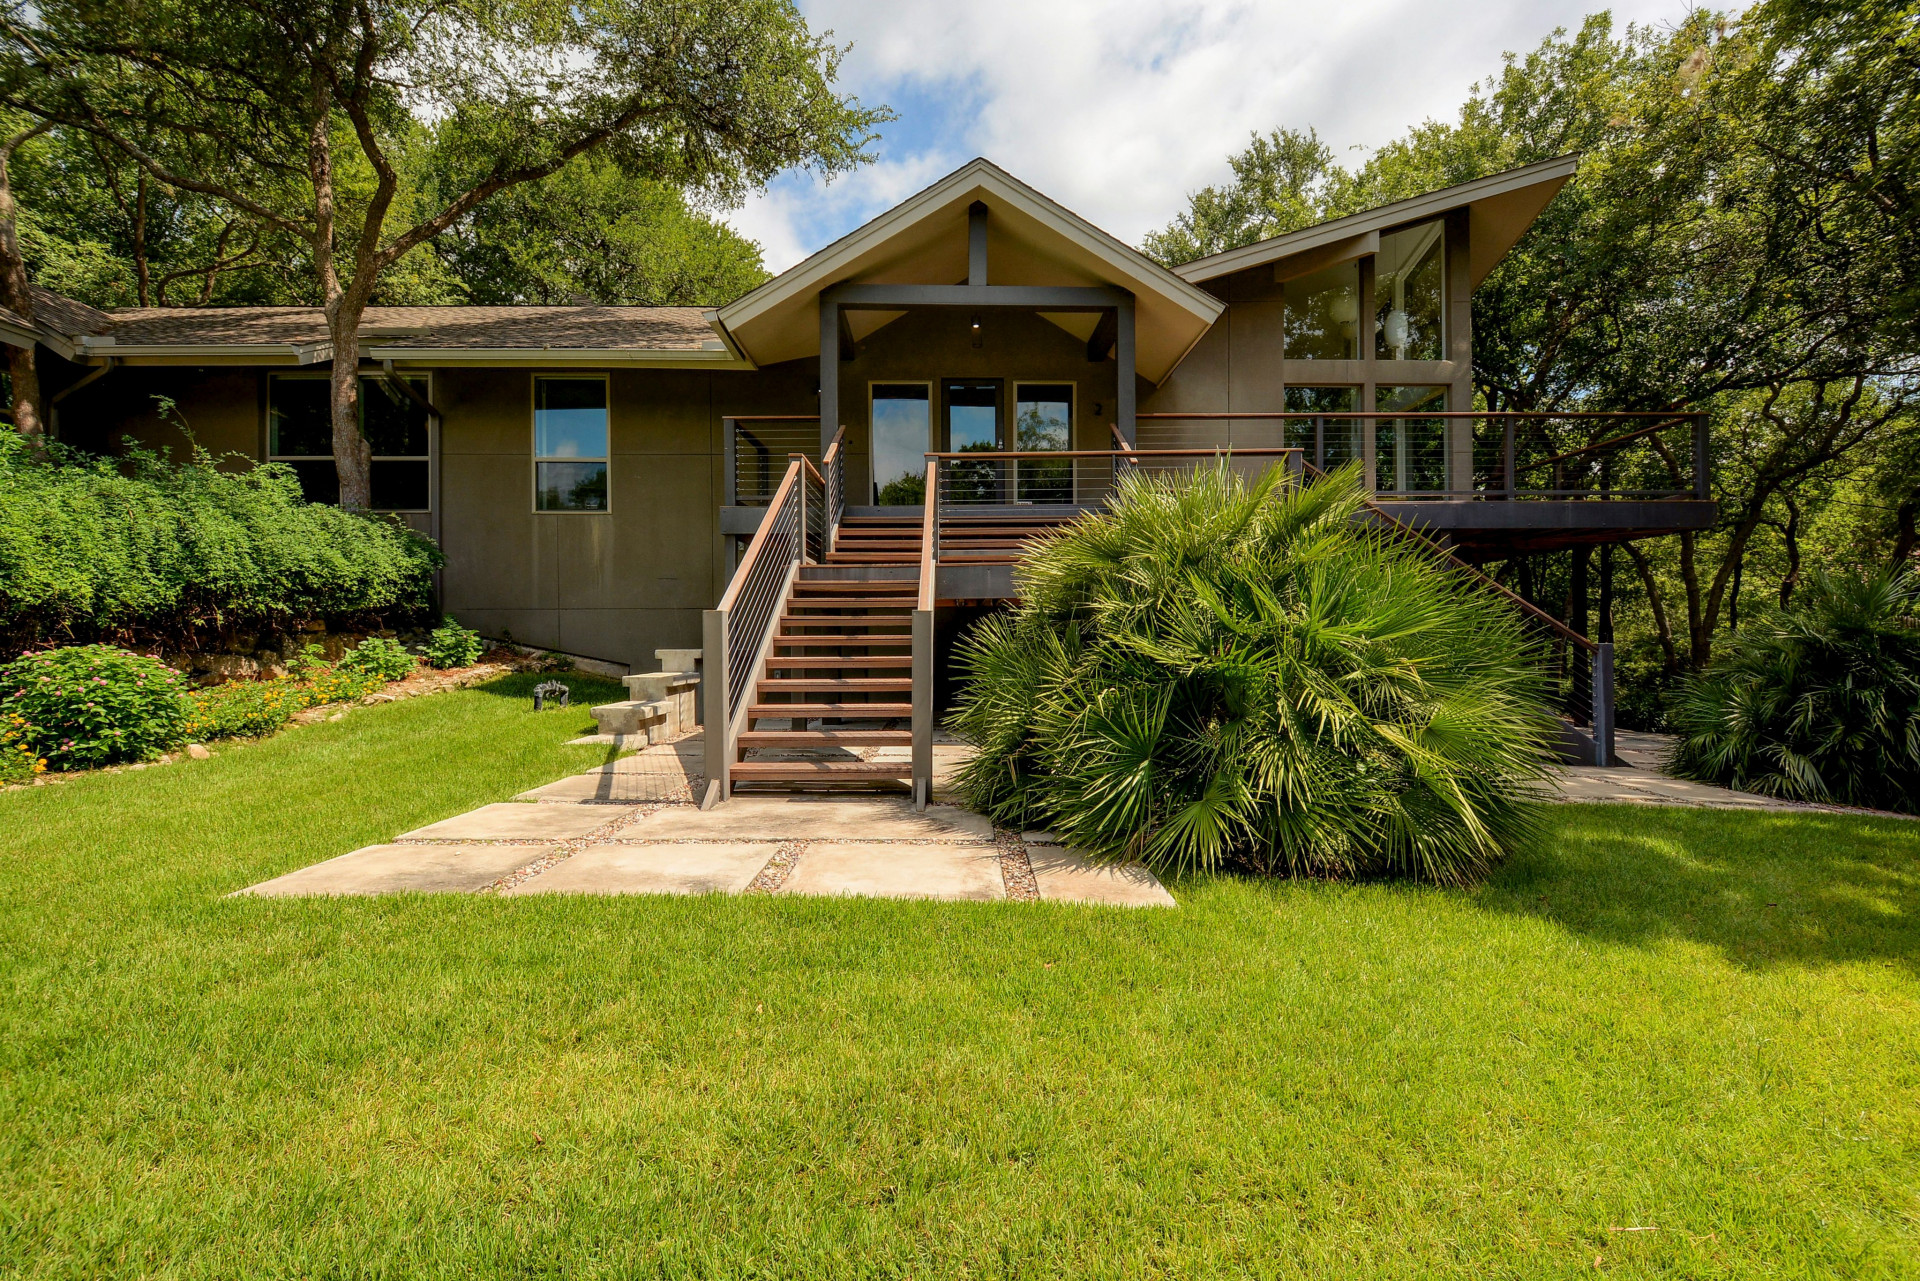 2 hidden cove house in austin ra88081 redawning for Austin cabin rentals